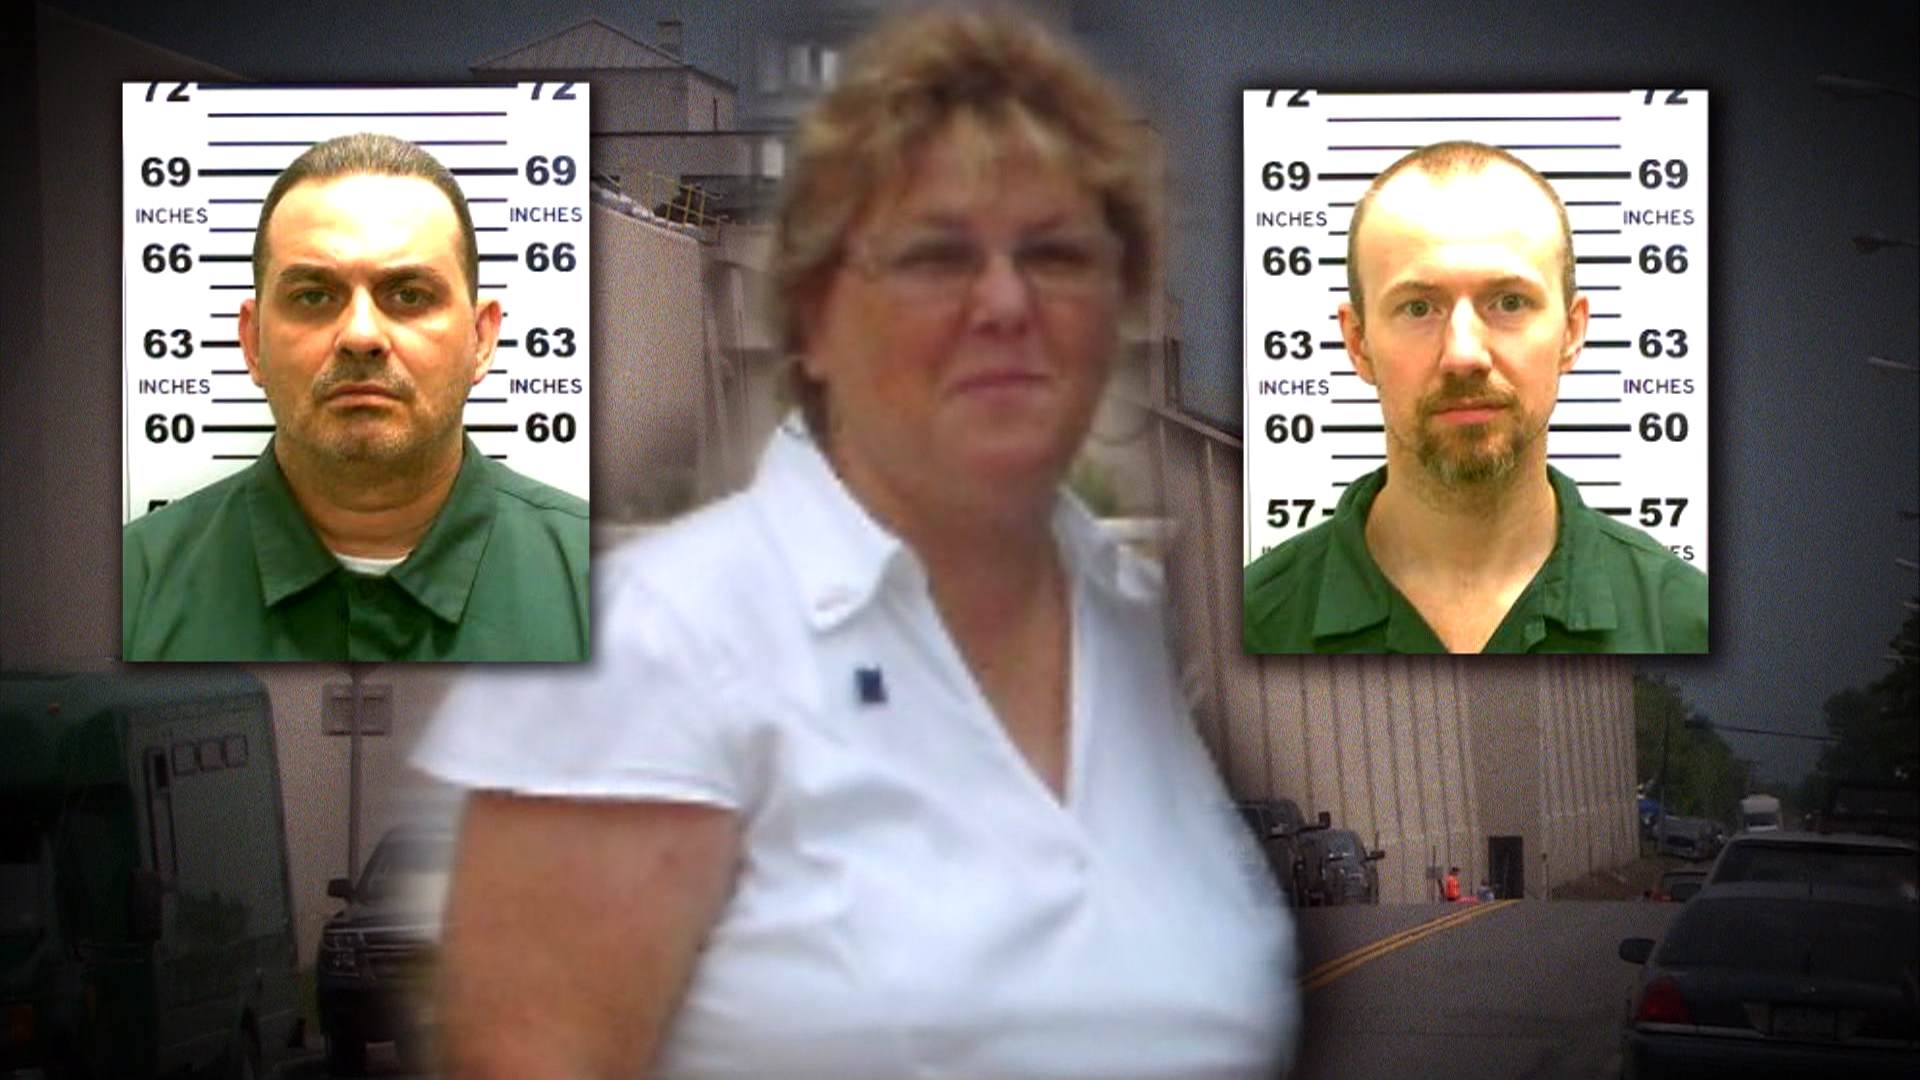 Details of Joyce Mitchell's prison relationships emerge